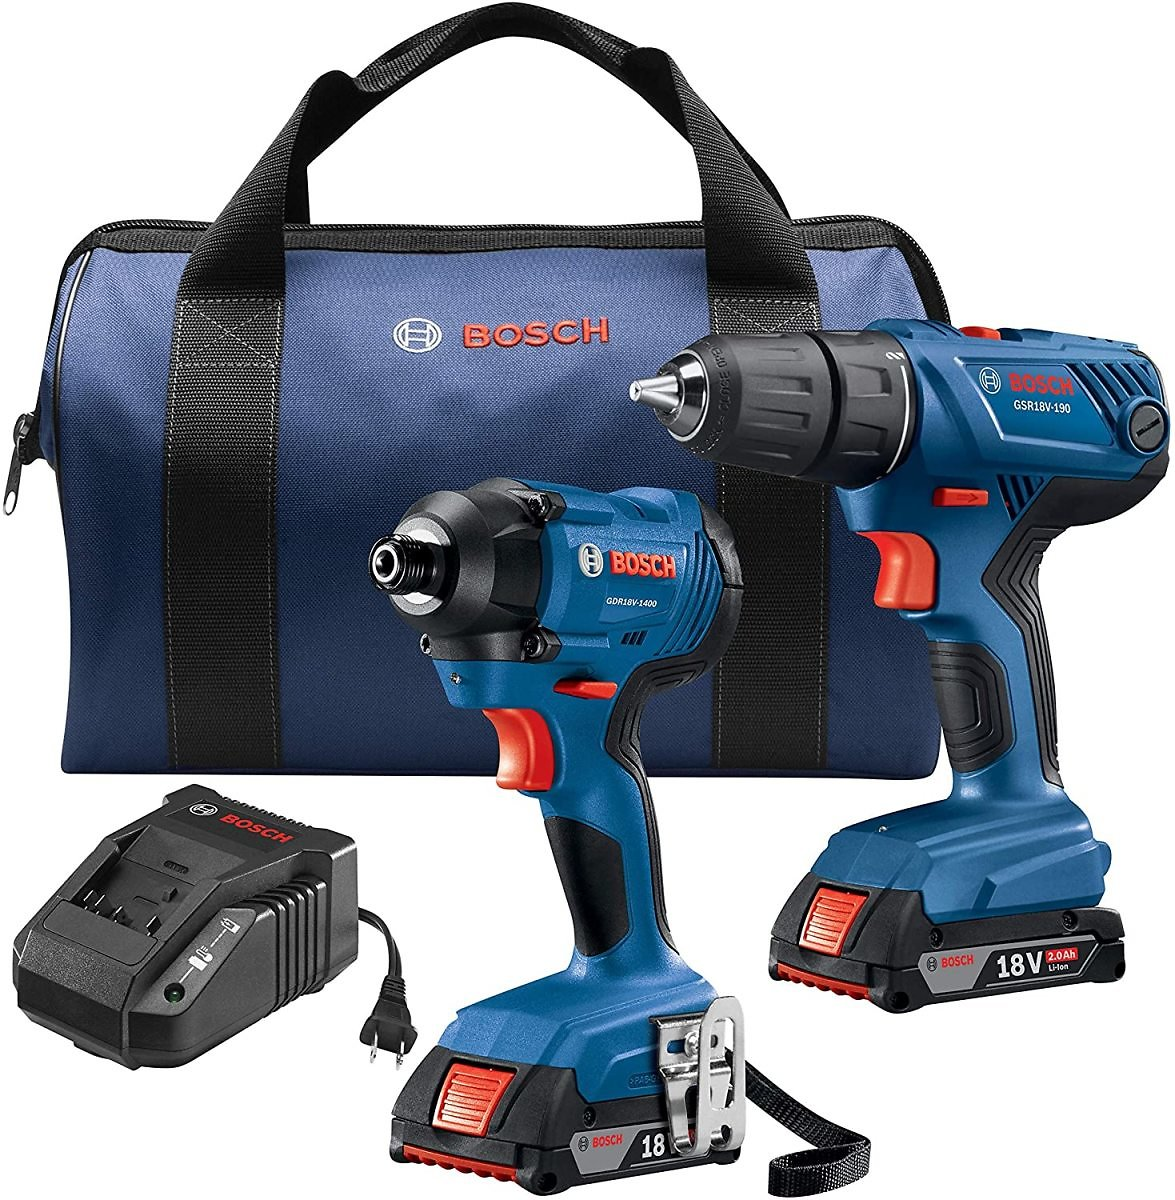 BOSCH 18V 2-Tool Combo Kit with 1/2 In. Compact Drill/Driver and 1/4 In. Hex Impact Driver GXL18V-26B22